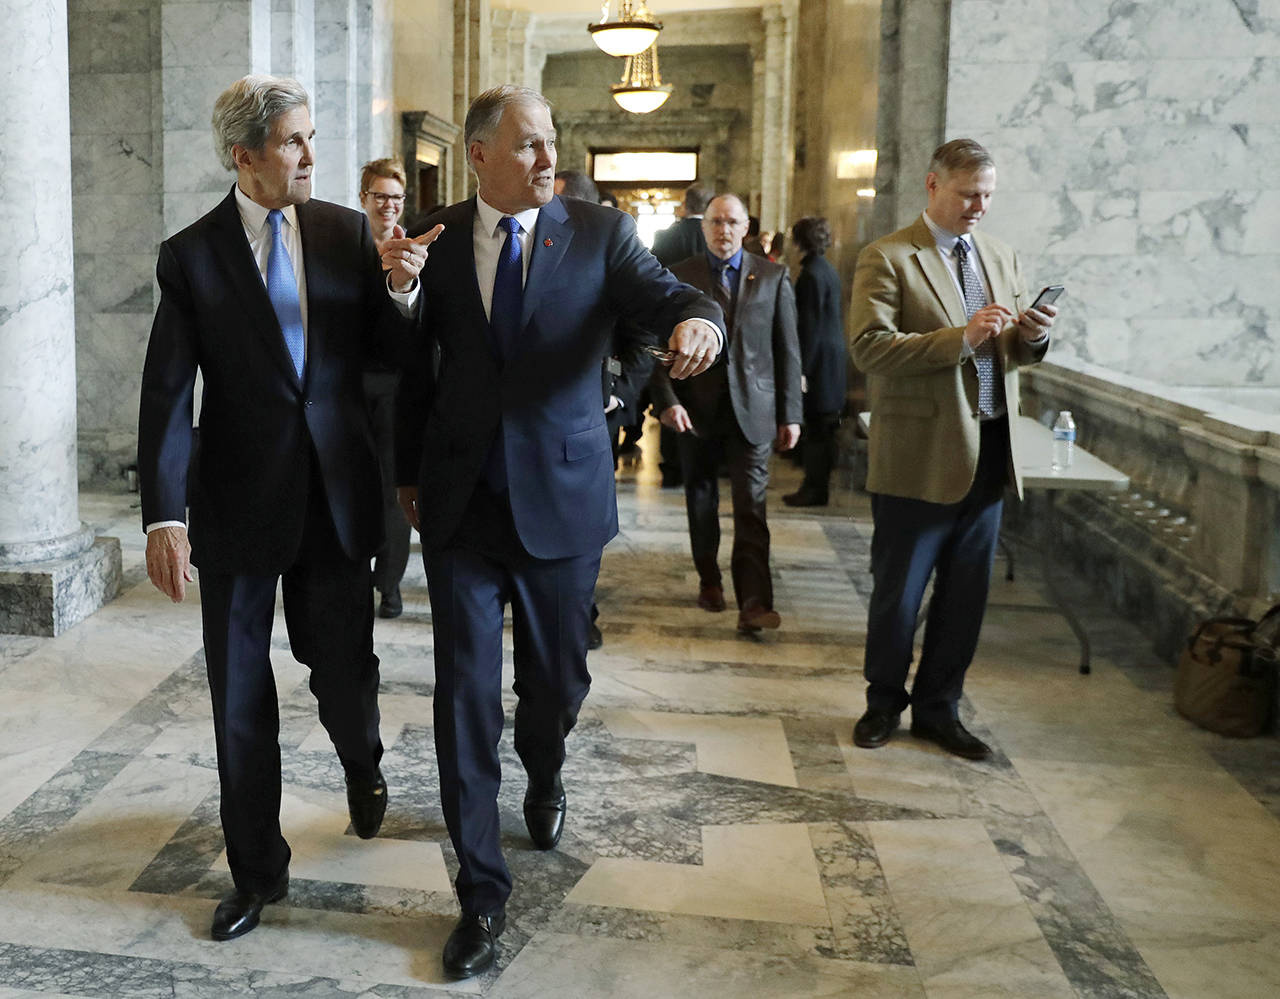 Former U.S. Secretary of State John Kerry (left) walks with Gov. Jay Inslee (center) on Feb. 13, 2018, during a visit hosted by Inslee to participate in meetings discussing the governor's proposed tax on fossil fuel emissions. (AP Photo/Ted S. Warren, file)